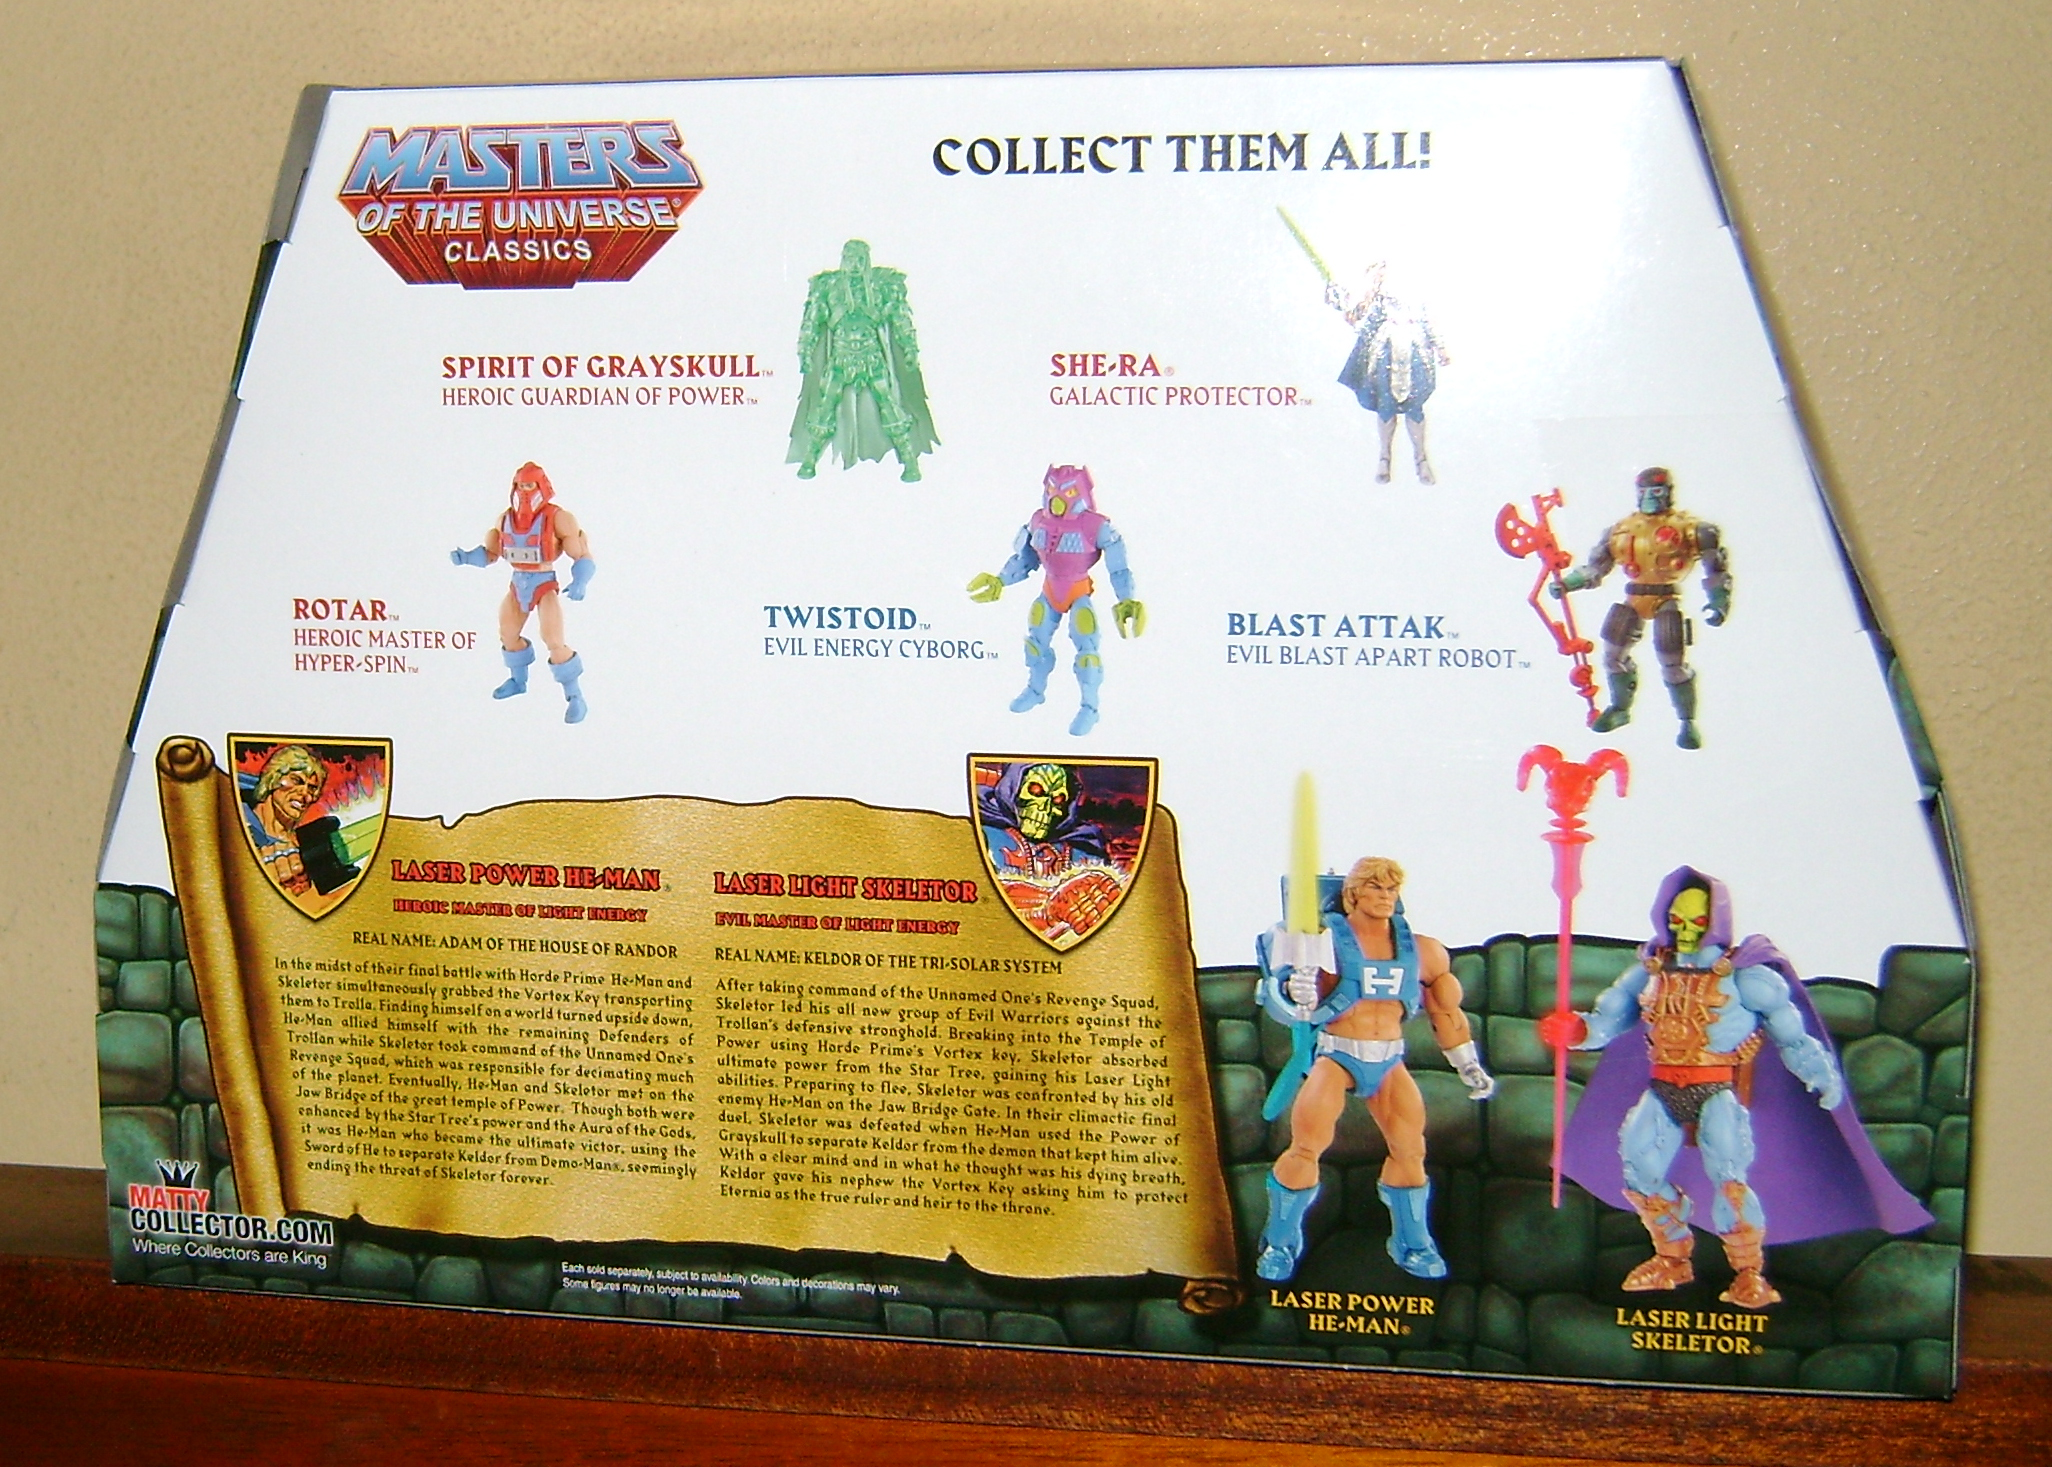 Las 2 Final MOTUC: Prahvus, Son Of He Man and Laser Power He Man With Laser Light Skeletor!